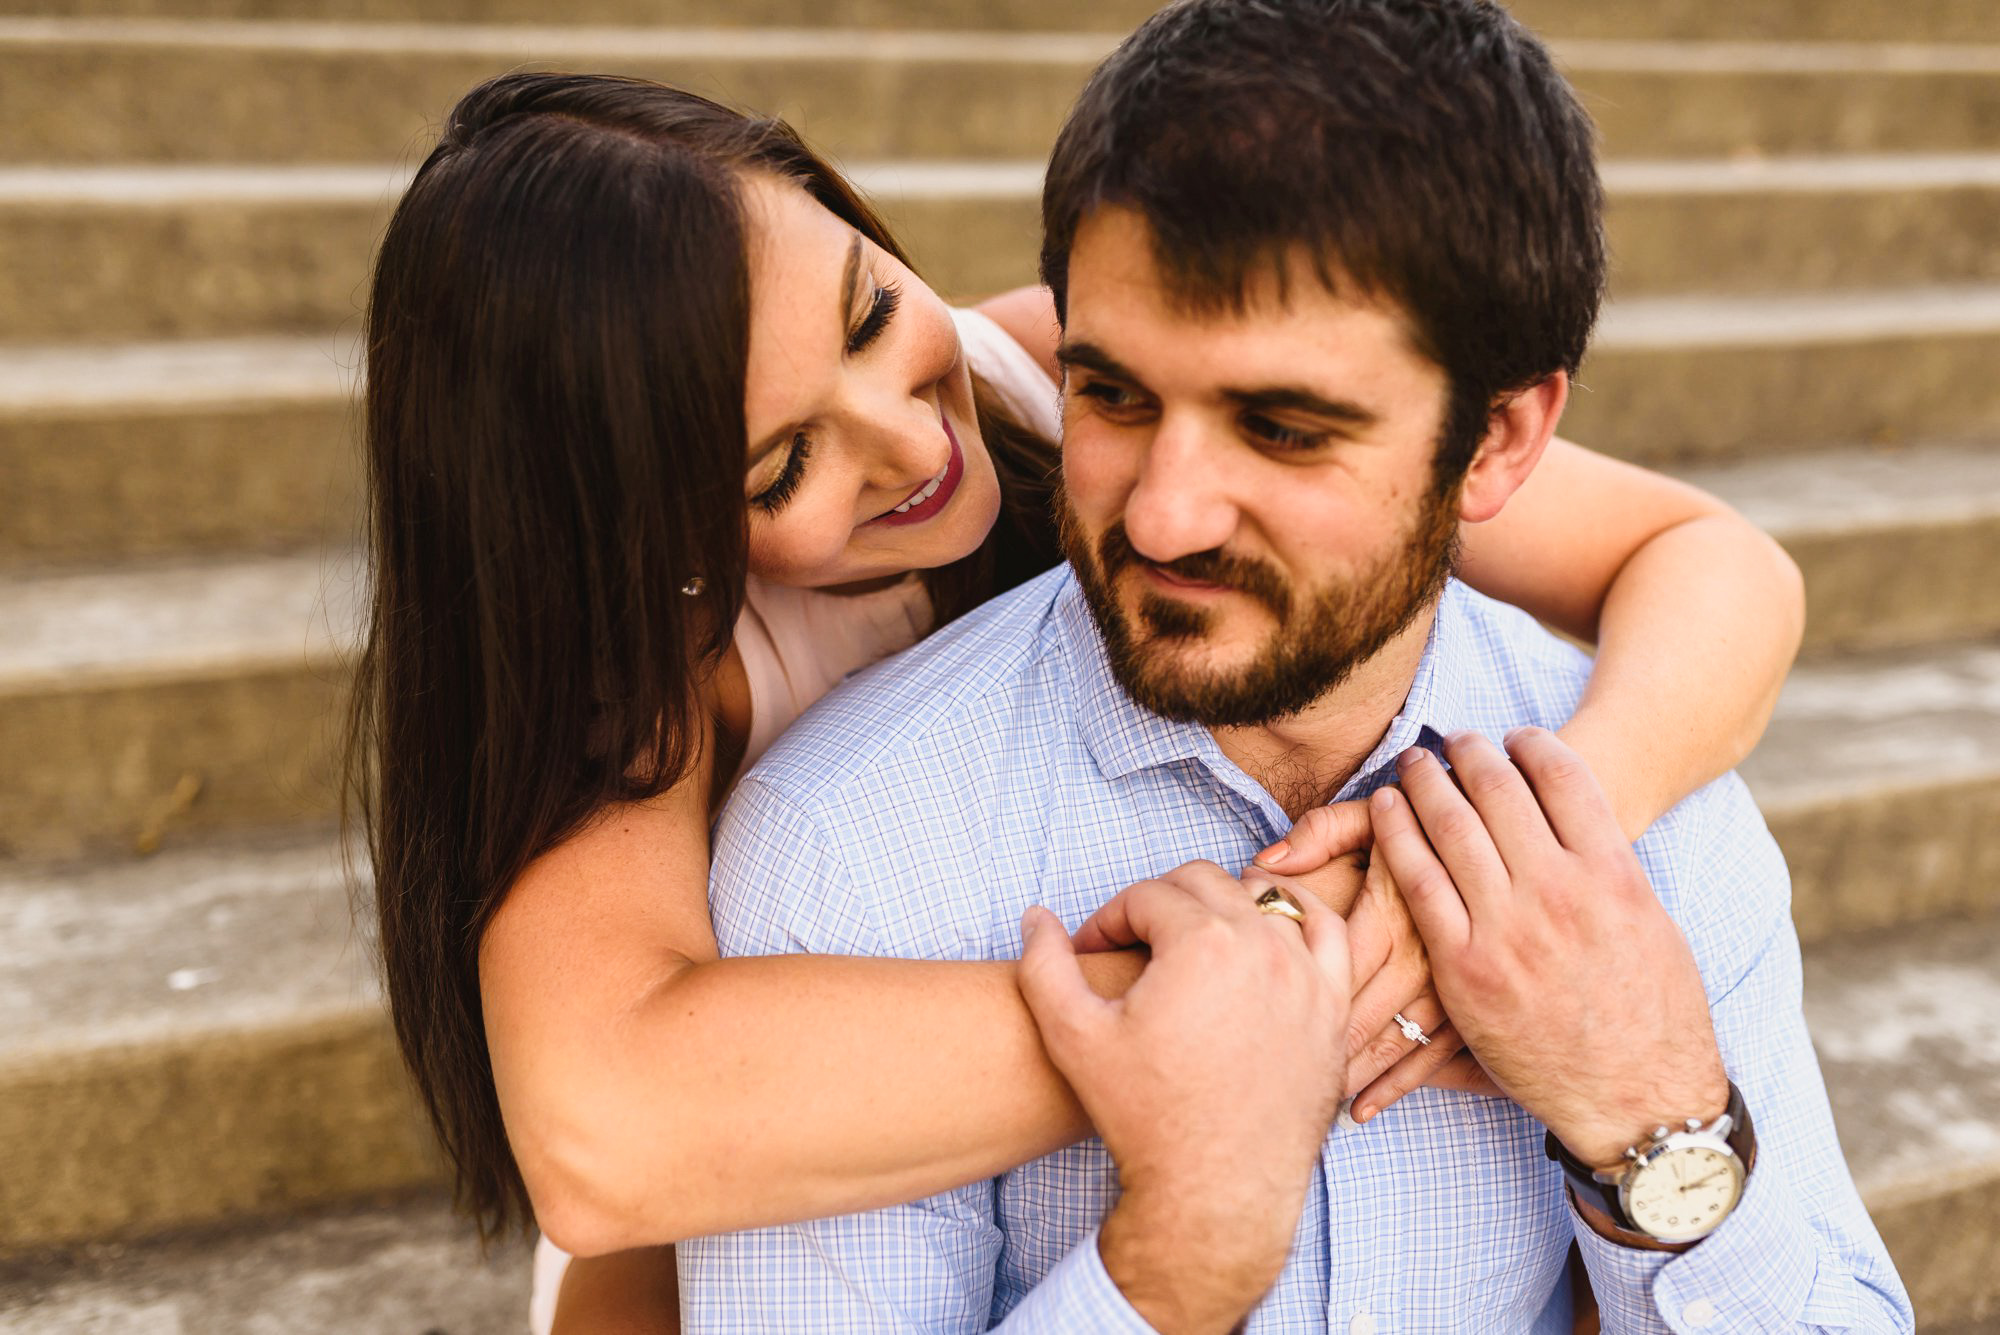 engagement-photography-88-love-stories-5.jpg